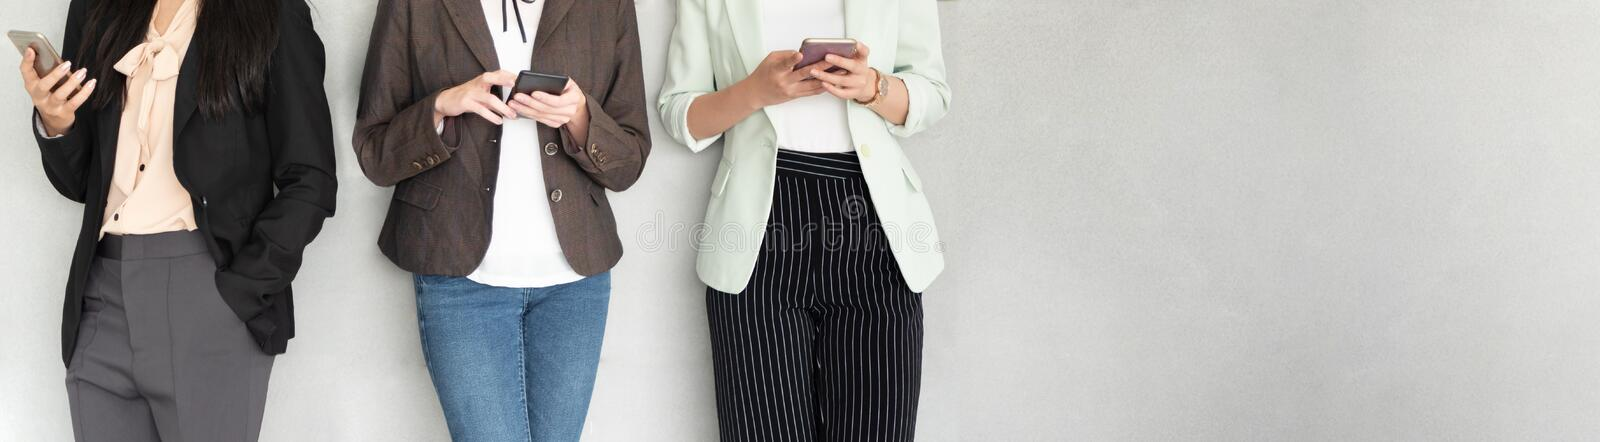 Cropped image of Group of Young Businesswomen using smartphones while standing over grey bare wall. royalty free stock photo